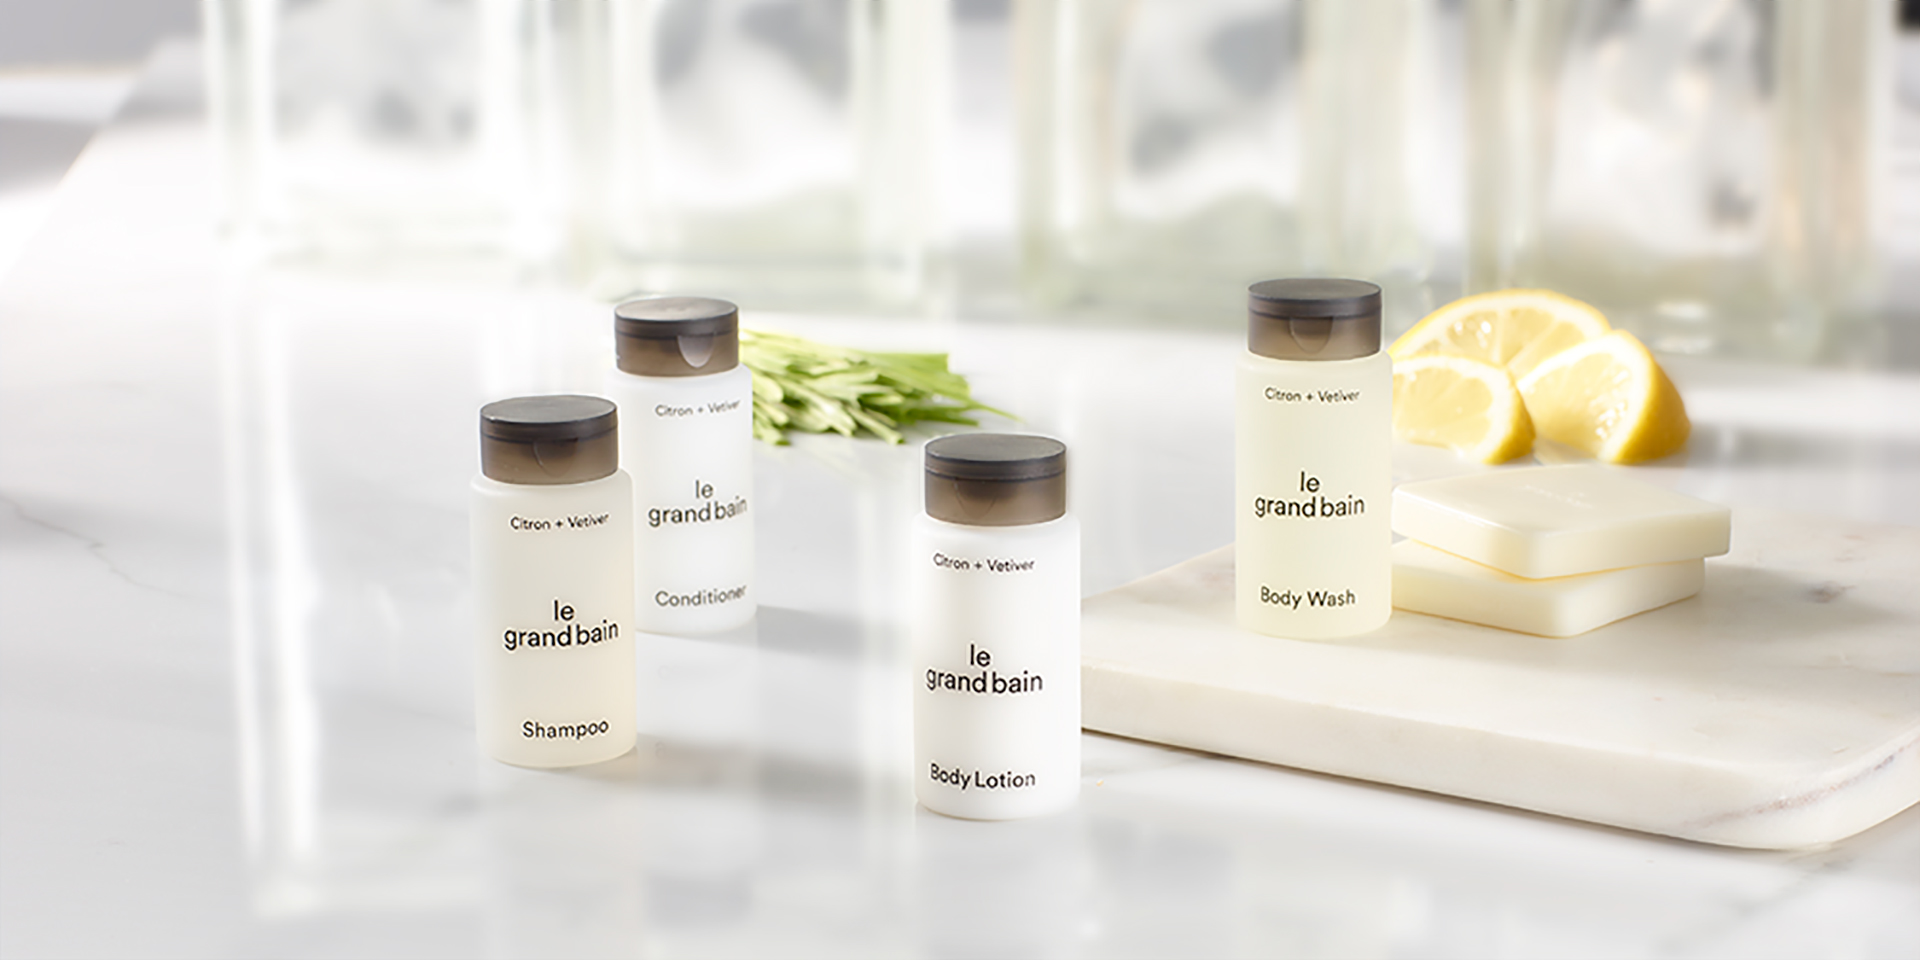 Sheraton Hotels & Resorts Introduces New Bath And Body Collection ...